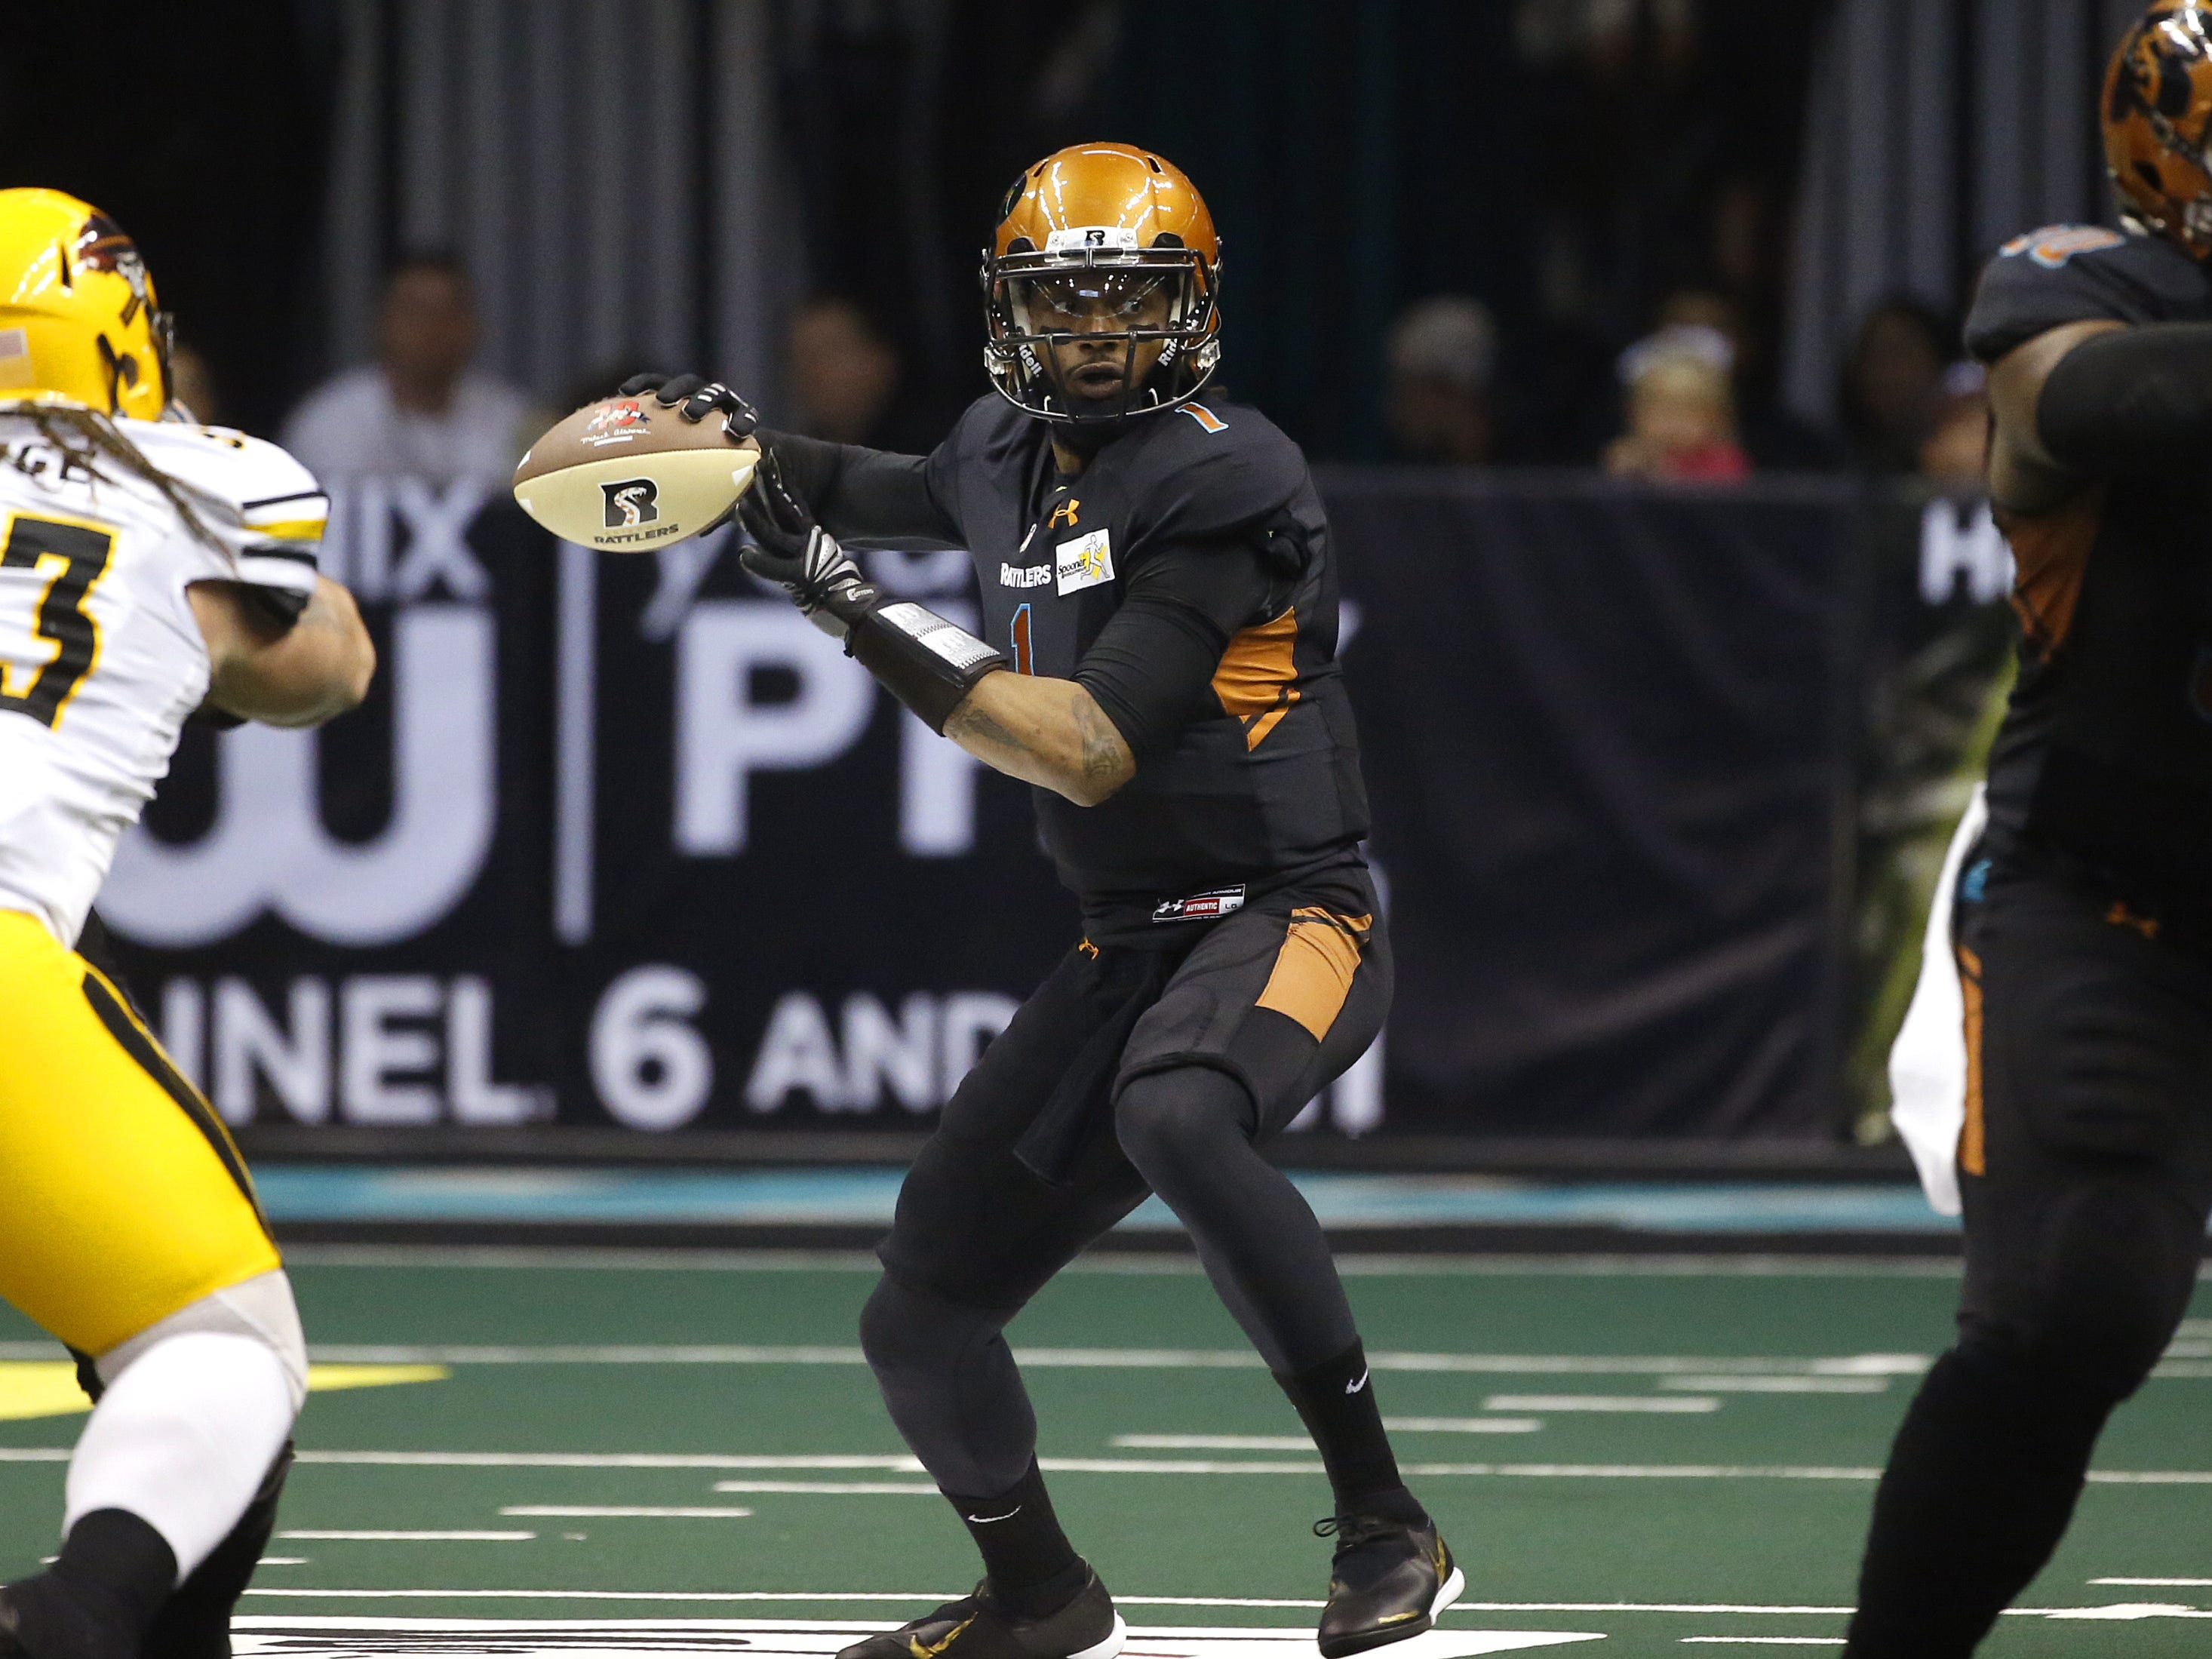 Rattlers' Verlon Reed Jr. (1) throws a pass under pressure from Sugar Skulls' Michael Kluge (93) during the first half at Talking Stick Resort Arena in Phoenix, Ariz. on March 16, 2019.